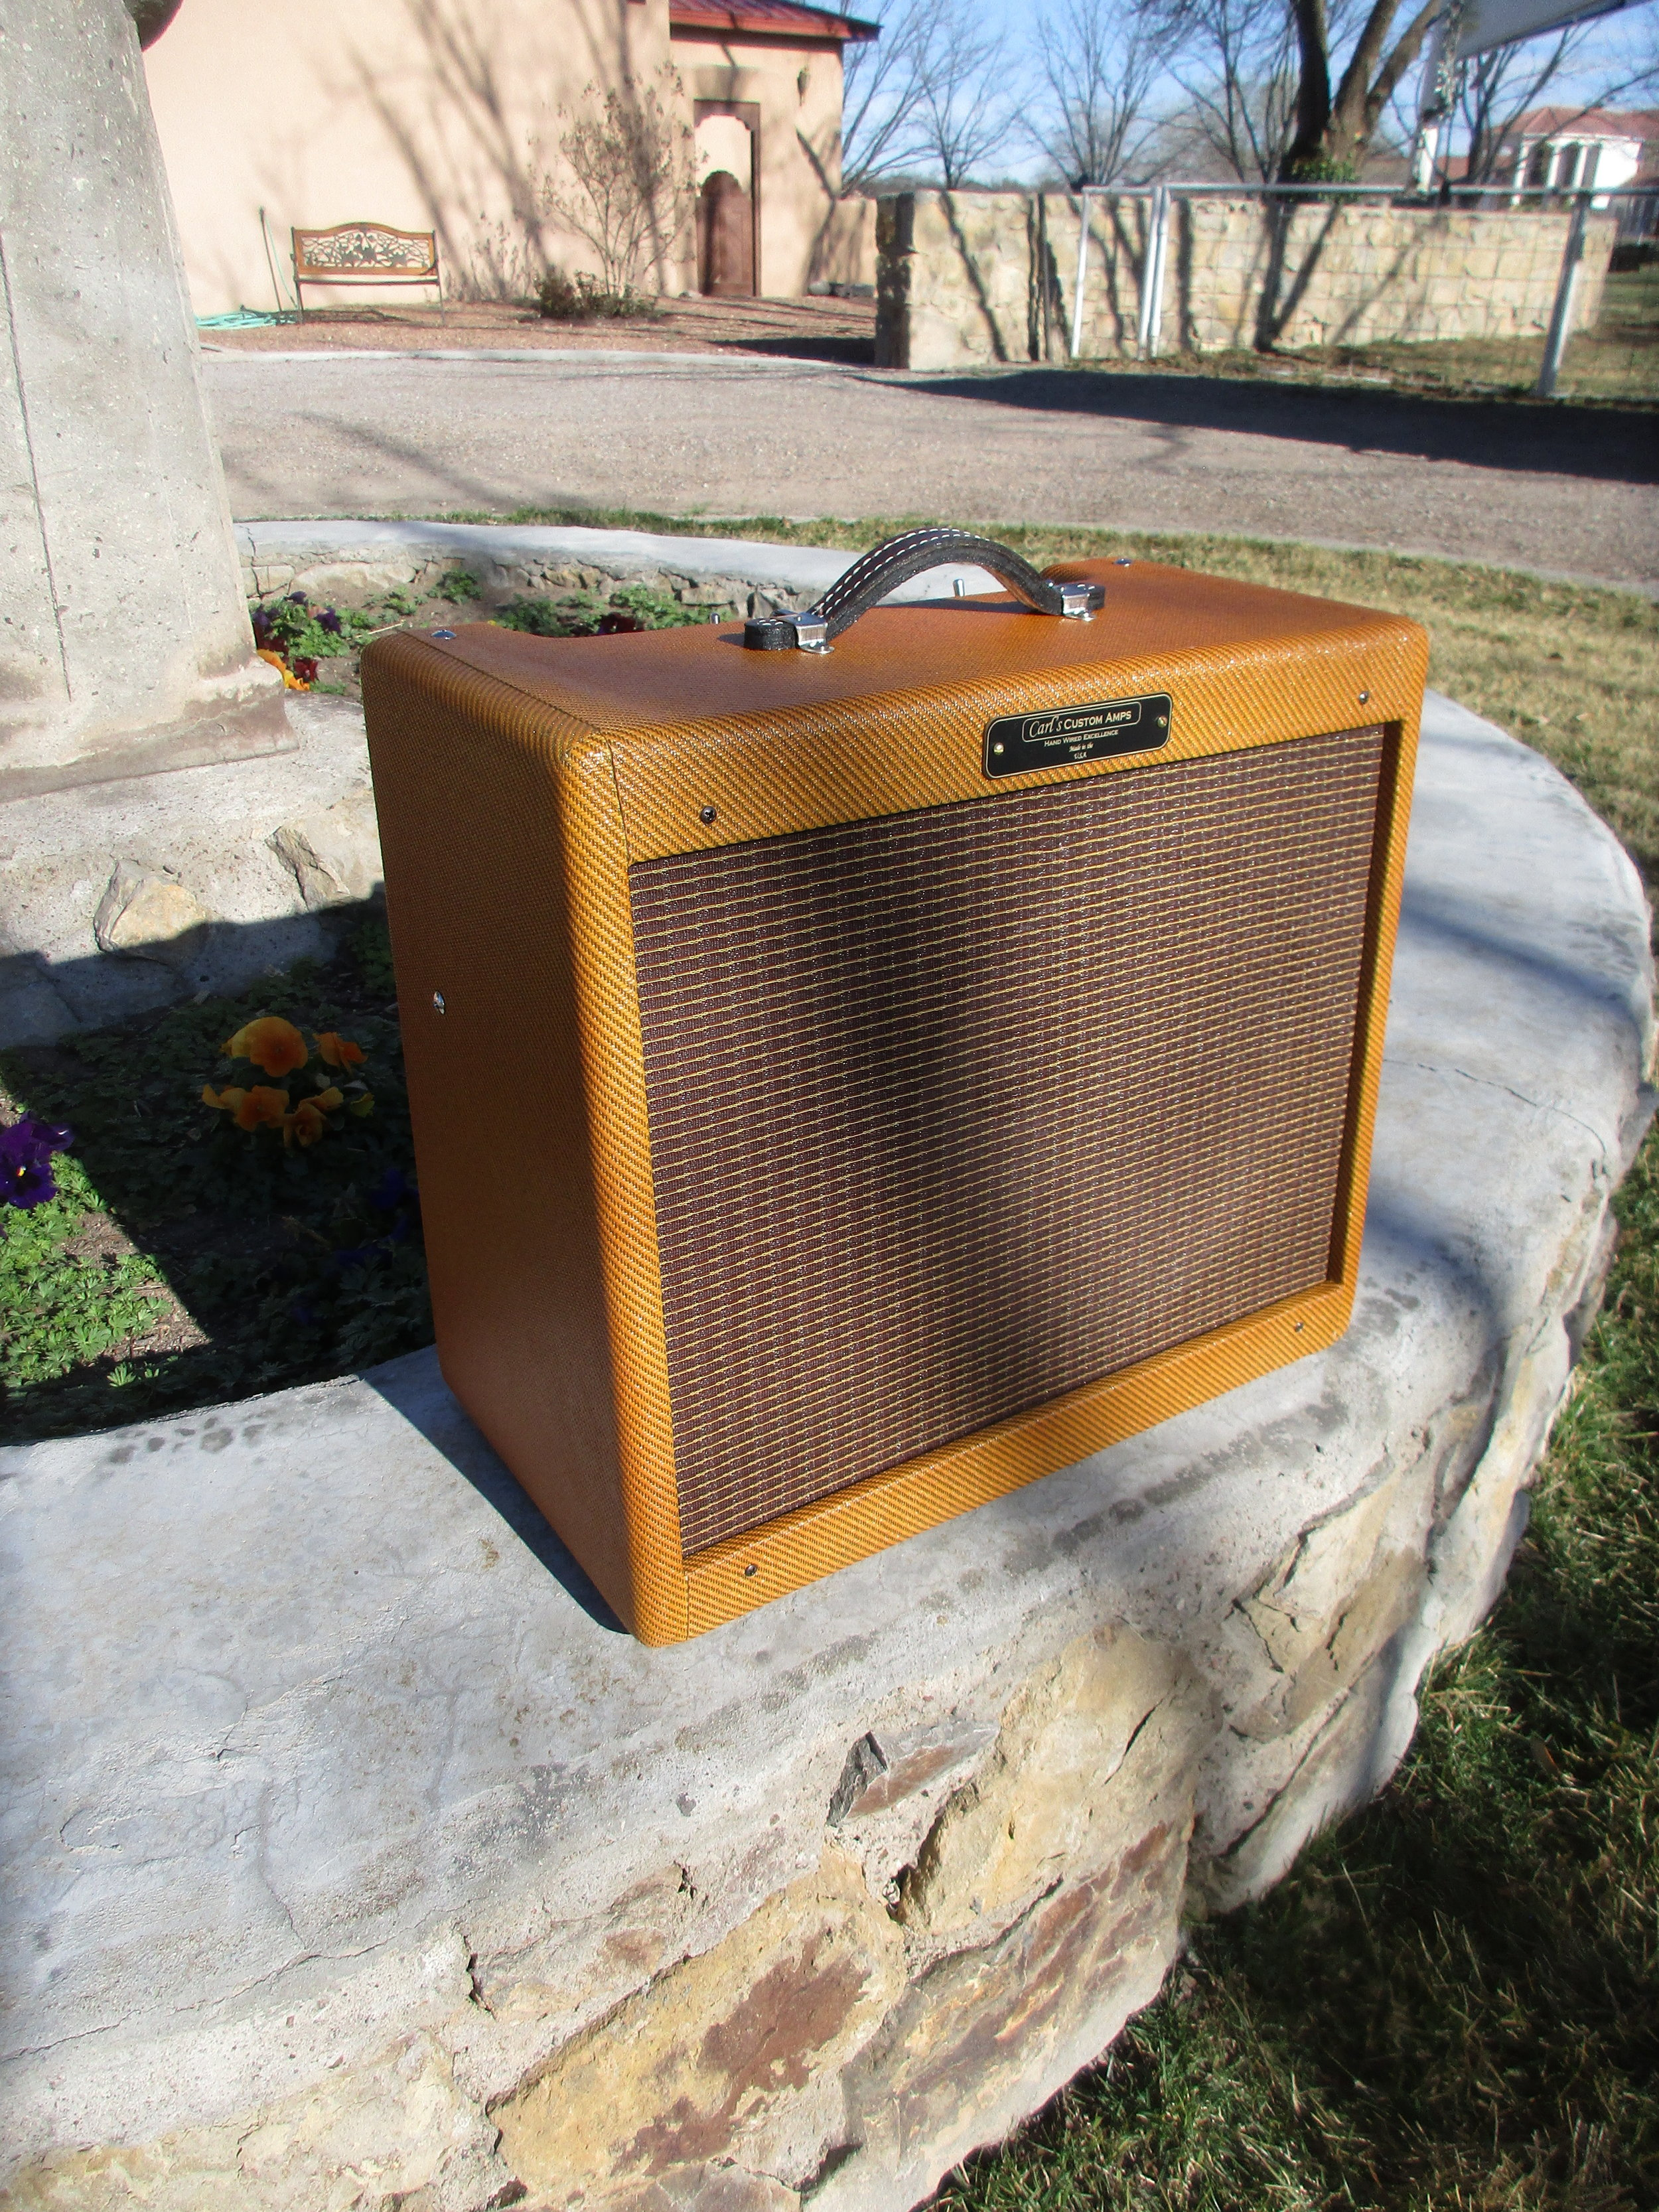 I rebuilt this Fender Blues Junior in a cool Tweed 5W circuit with a Volume, Tone, Fat Switch and a 5W/1W switch. I also lacquered the cab. Man it sounds great! The perfect bedroom amp.